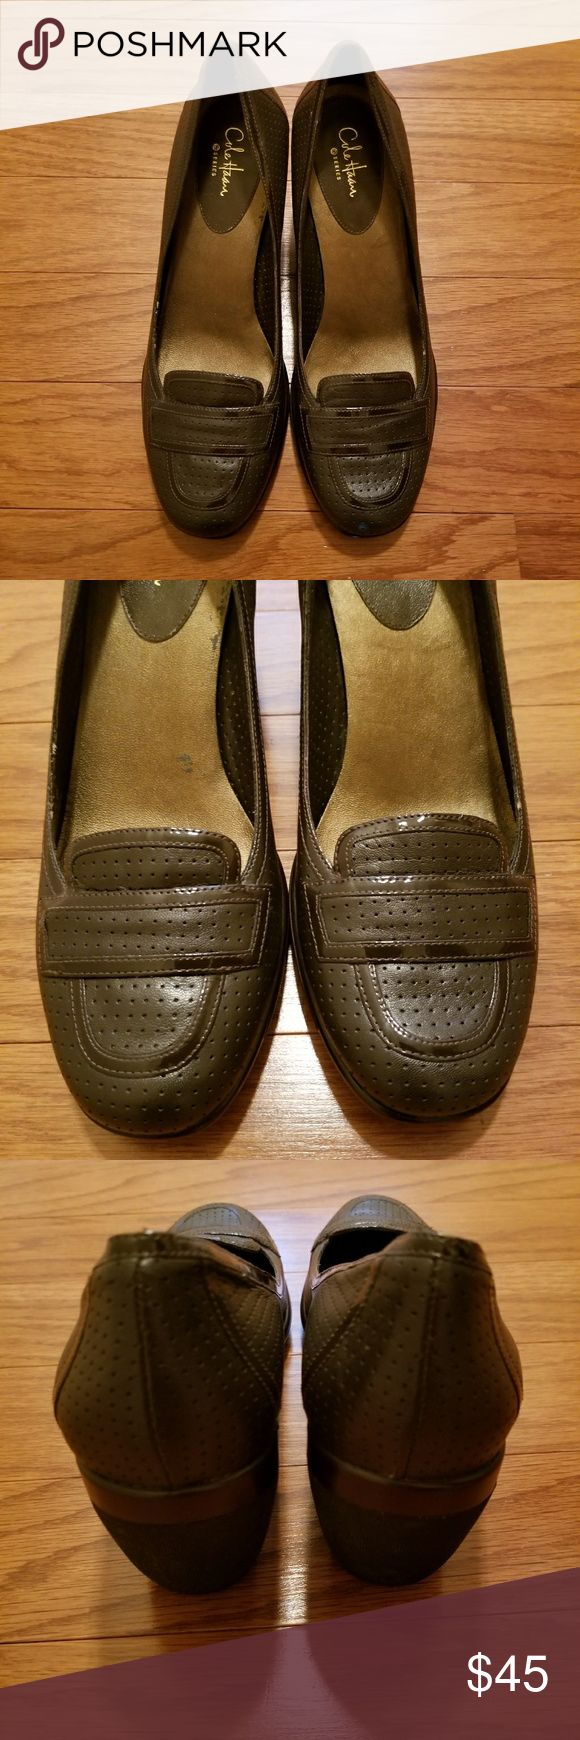 Cole Haan Nike Air Brown Wedges Size 9B Cole Haan Nike Air Brown Wedges Size 9B Cole Haan Shoes Wedges